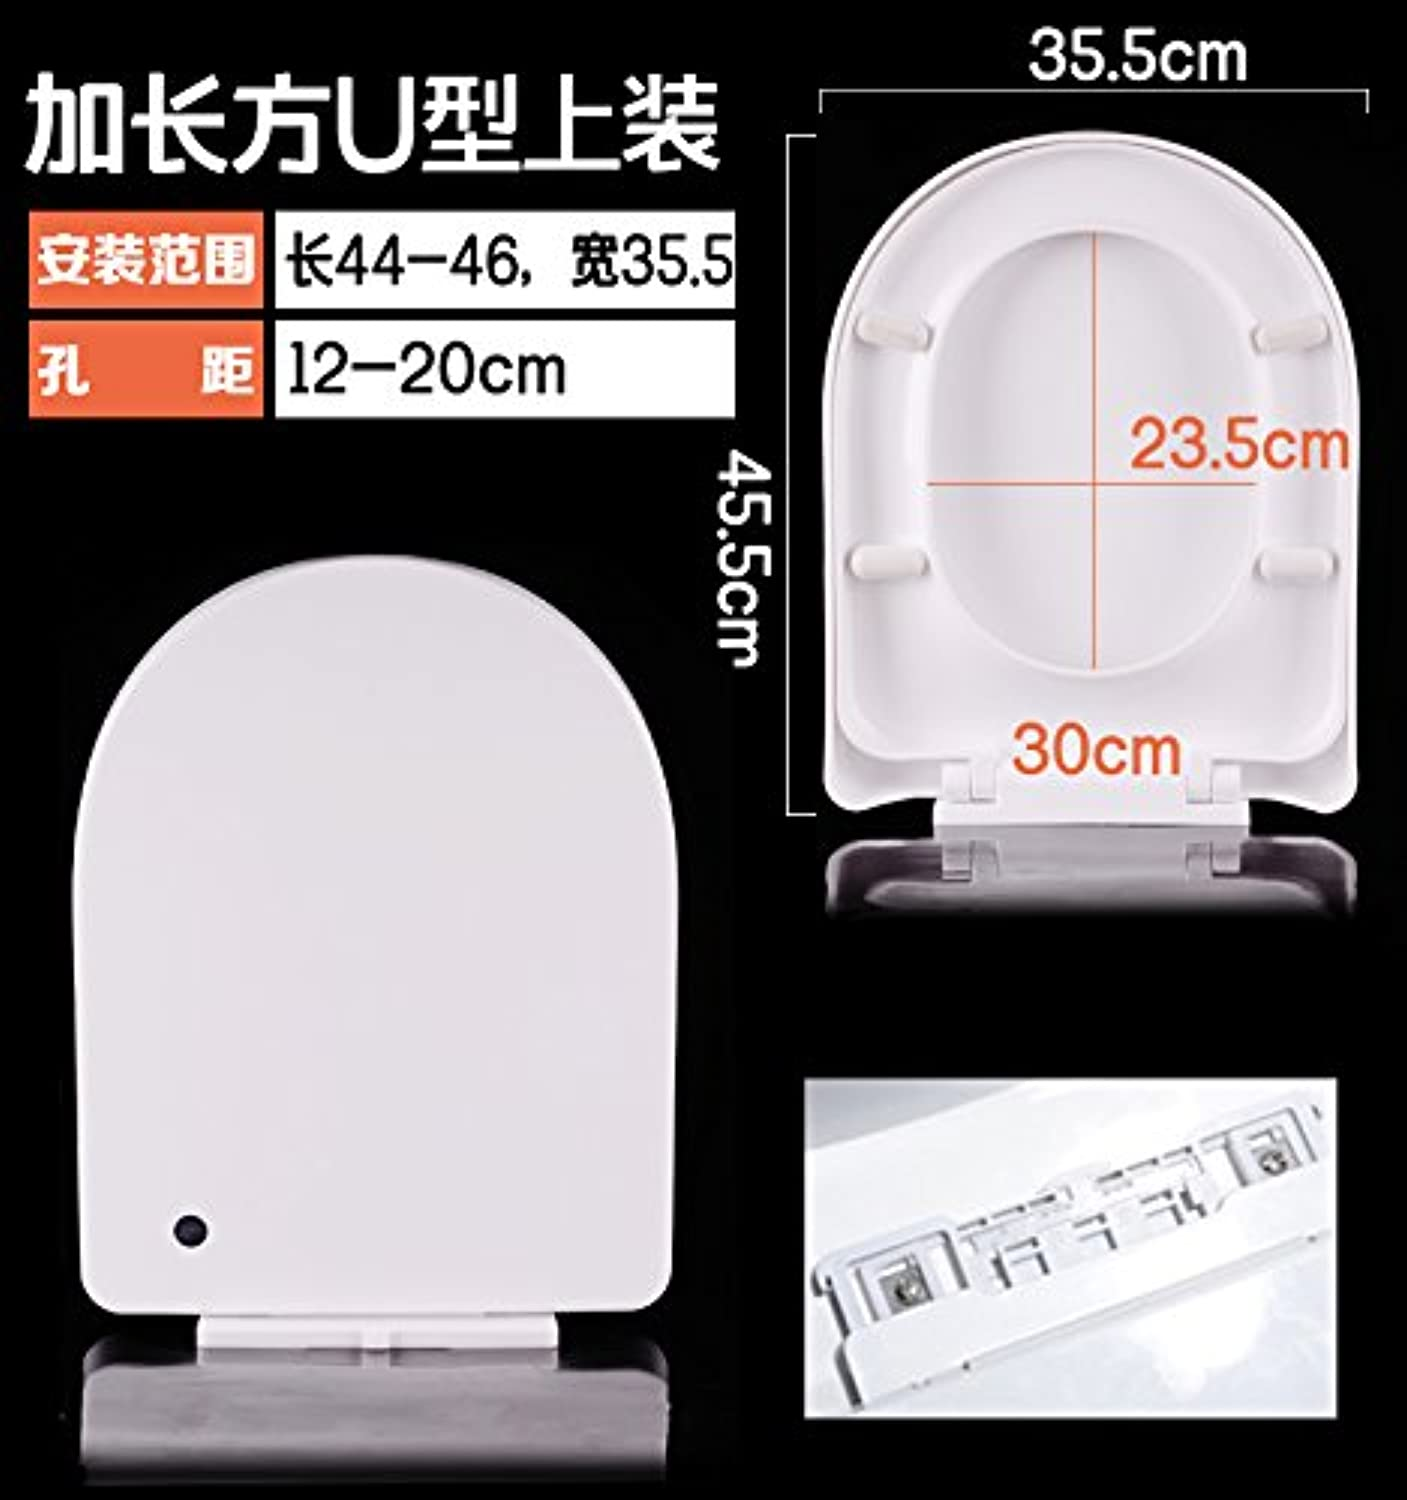 Topseh Toilet Cover General Slow Drop And Thickening Seat Cover Plate To Slow Down U Type V Type O Type Old Suit,Lengthening Usimple Modern Comfortable Bacteria Removal Home Toilet Common